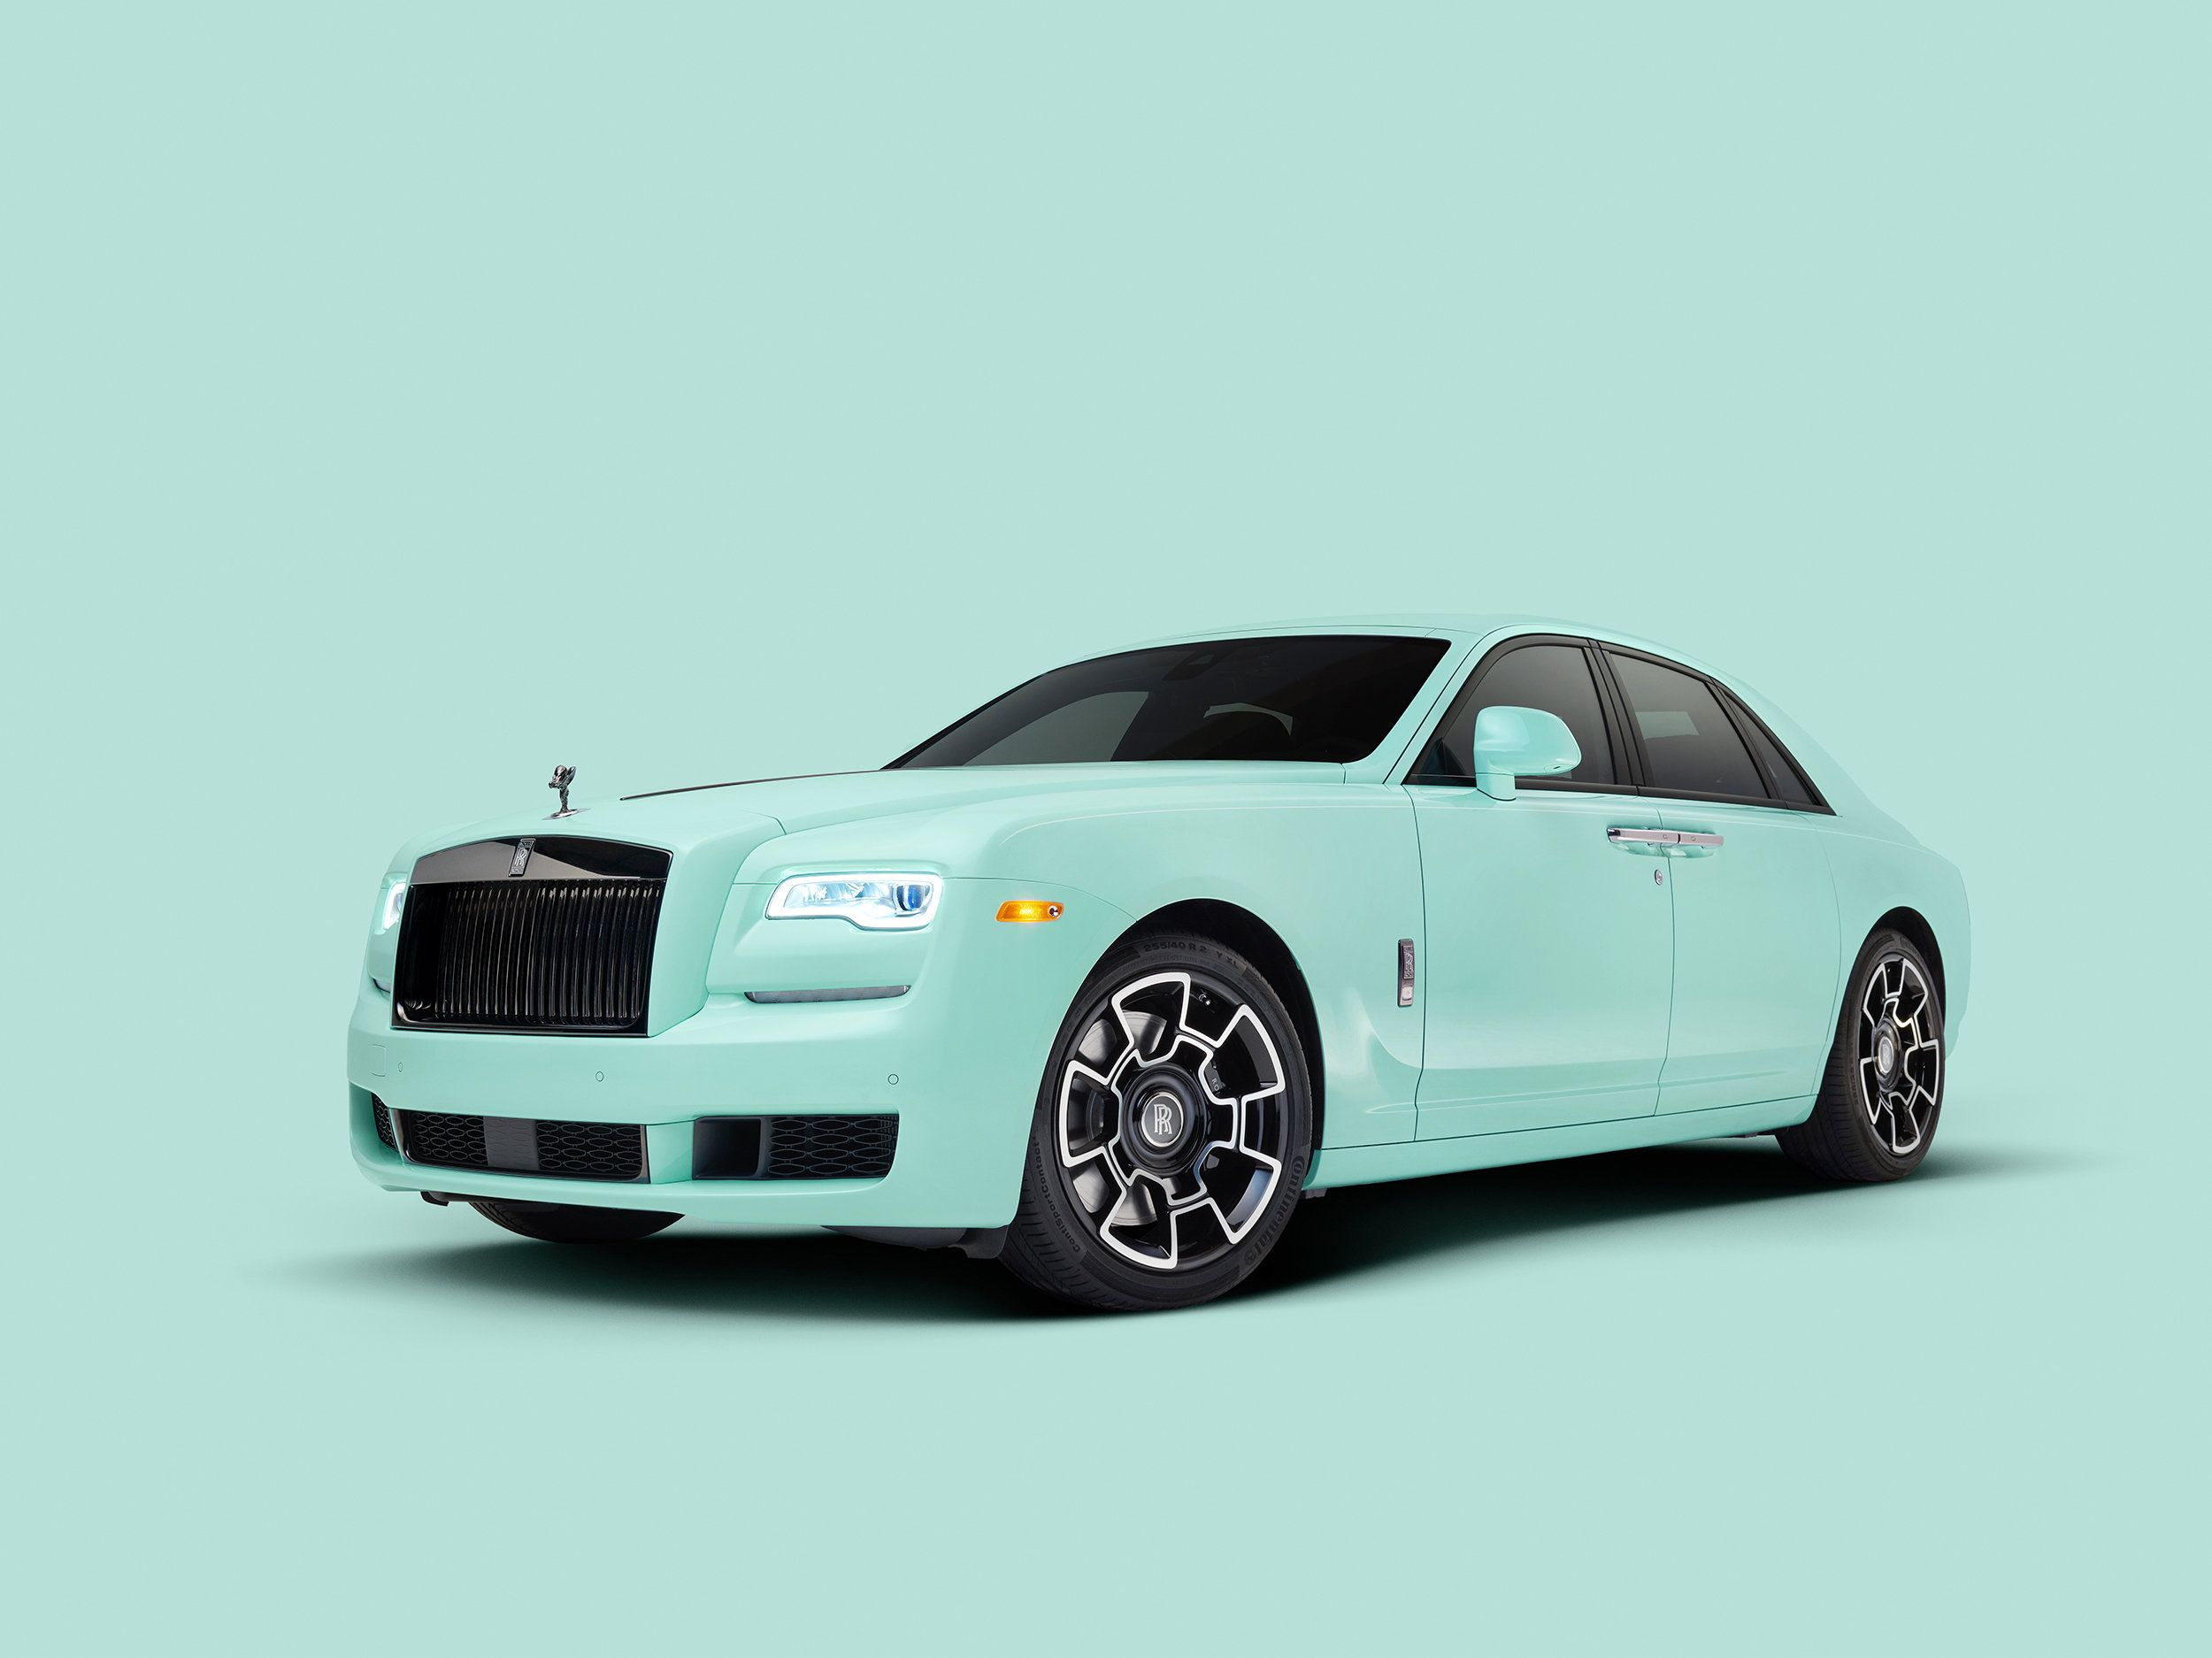 These Are The Most Intricate Bespoke Cars Rolls Royce Created In 2019 Automotivemap